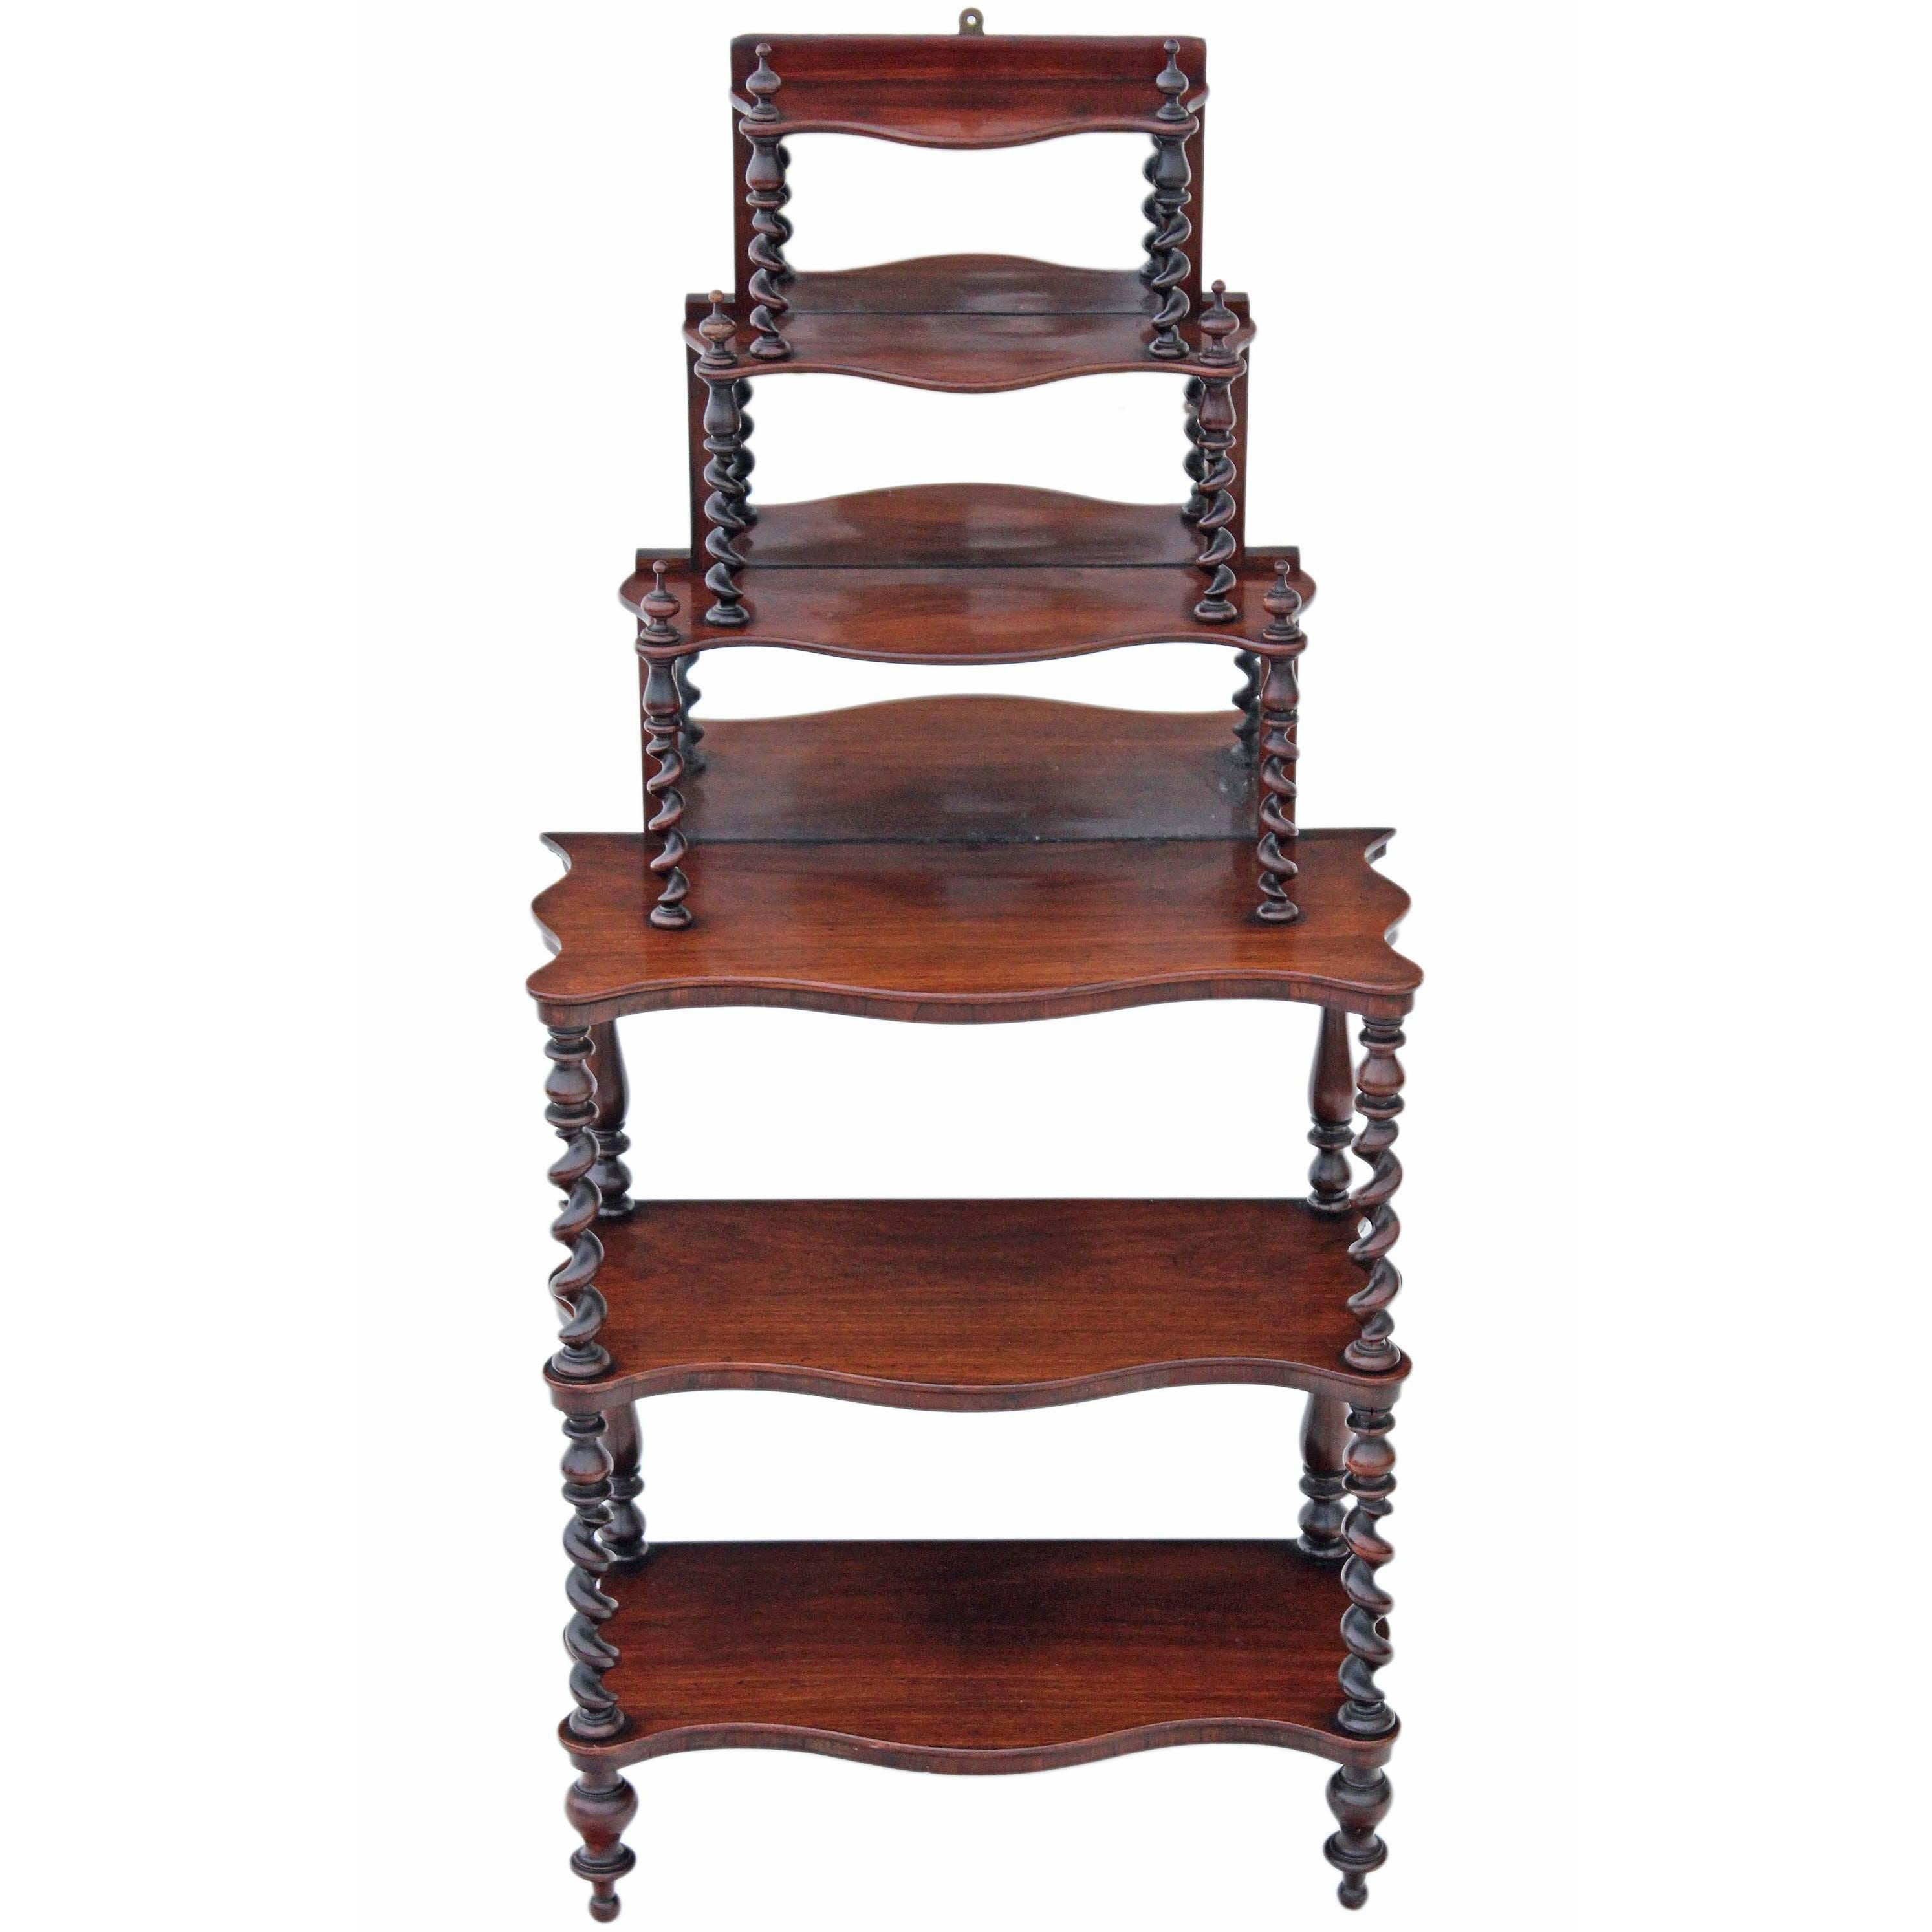 antique victorian 19th century rosewood open bookcase whatnot shelves display